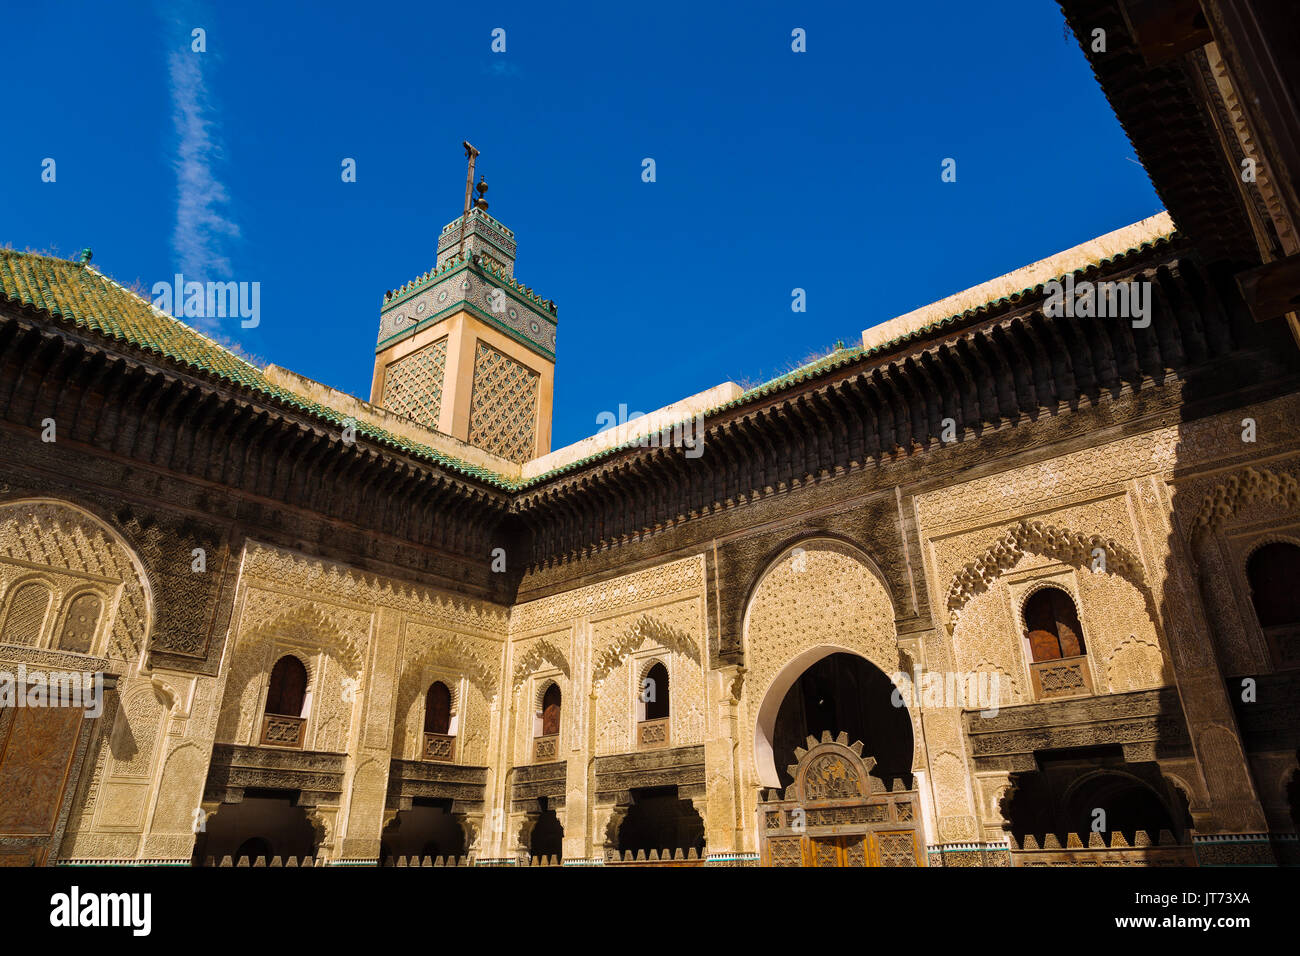 The Madrasa Bou Inania or Medersa Bu Inaniya.Souk Medina of Fez, Fes el Bali. Morocco, Maghreb North Africa Stock Photo